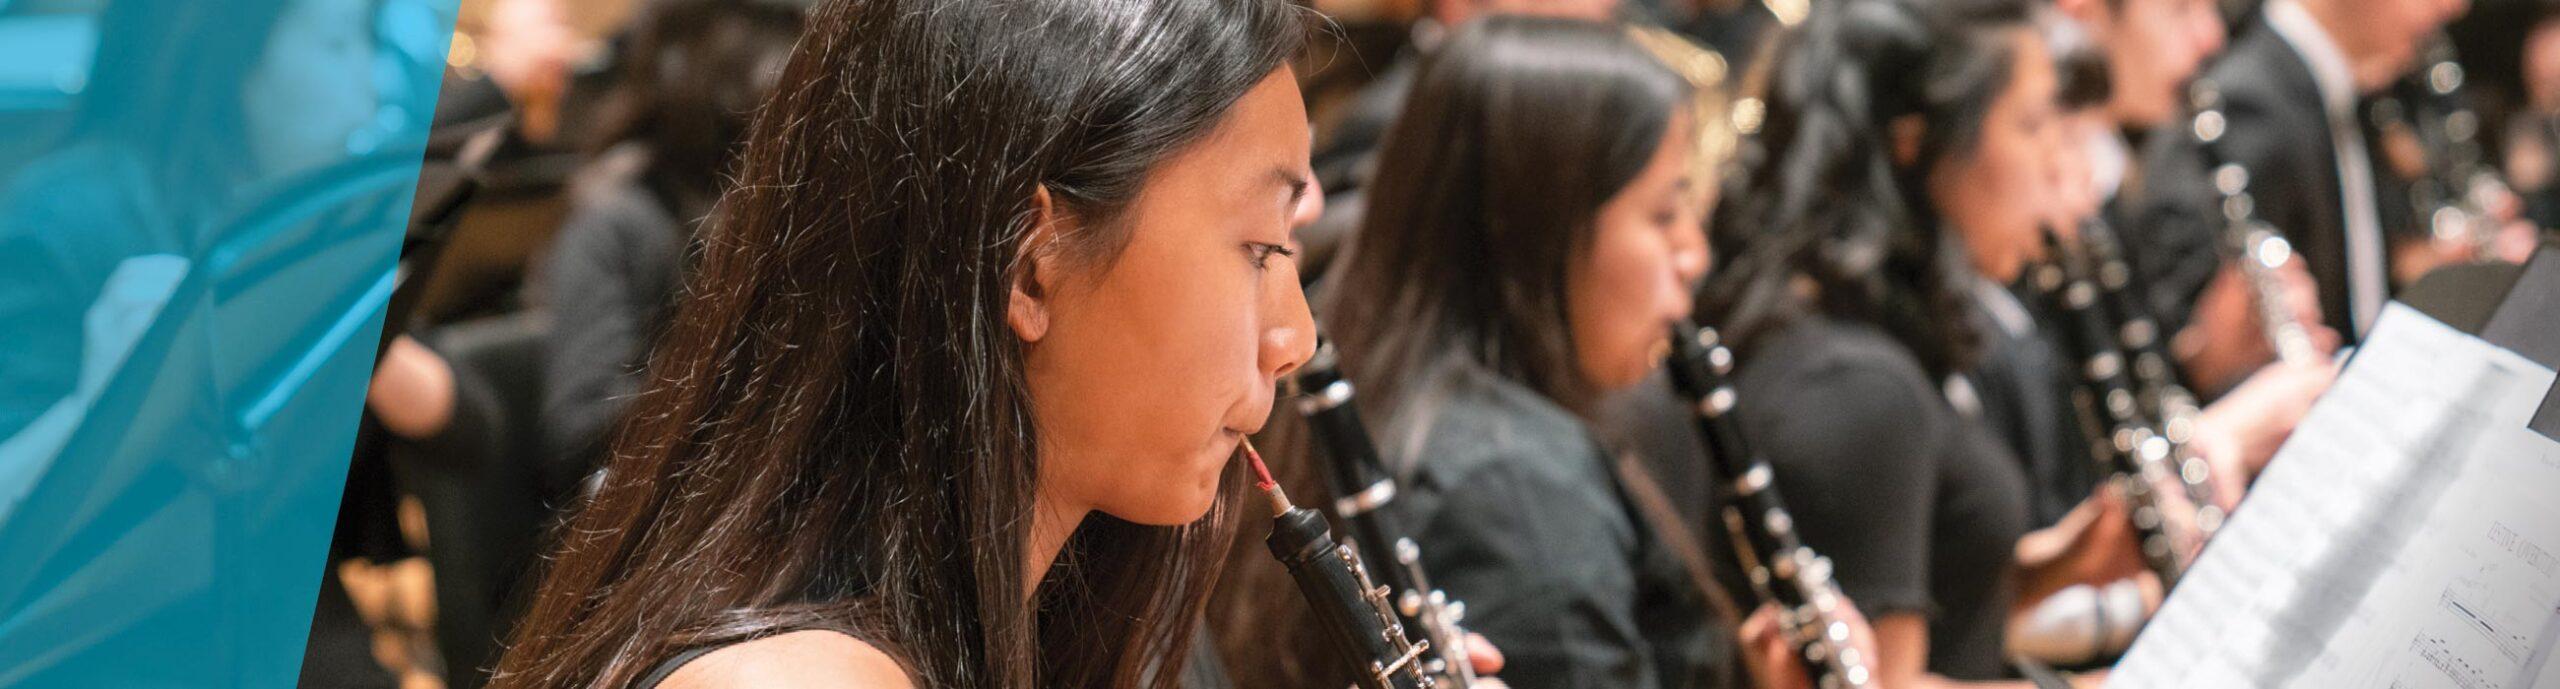 Oboe players on stage in a row